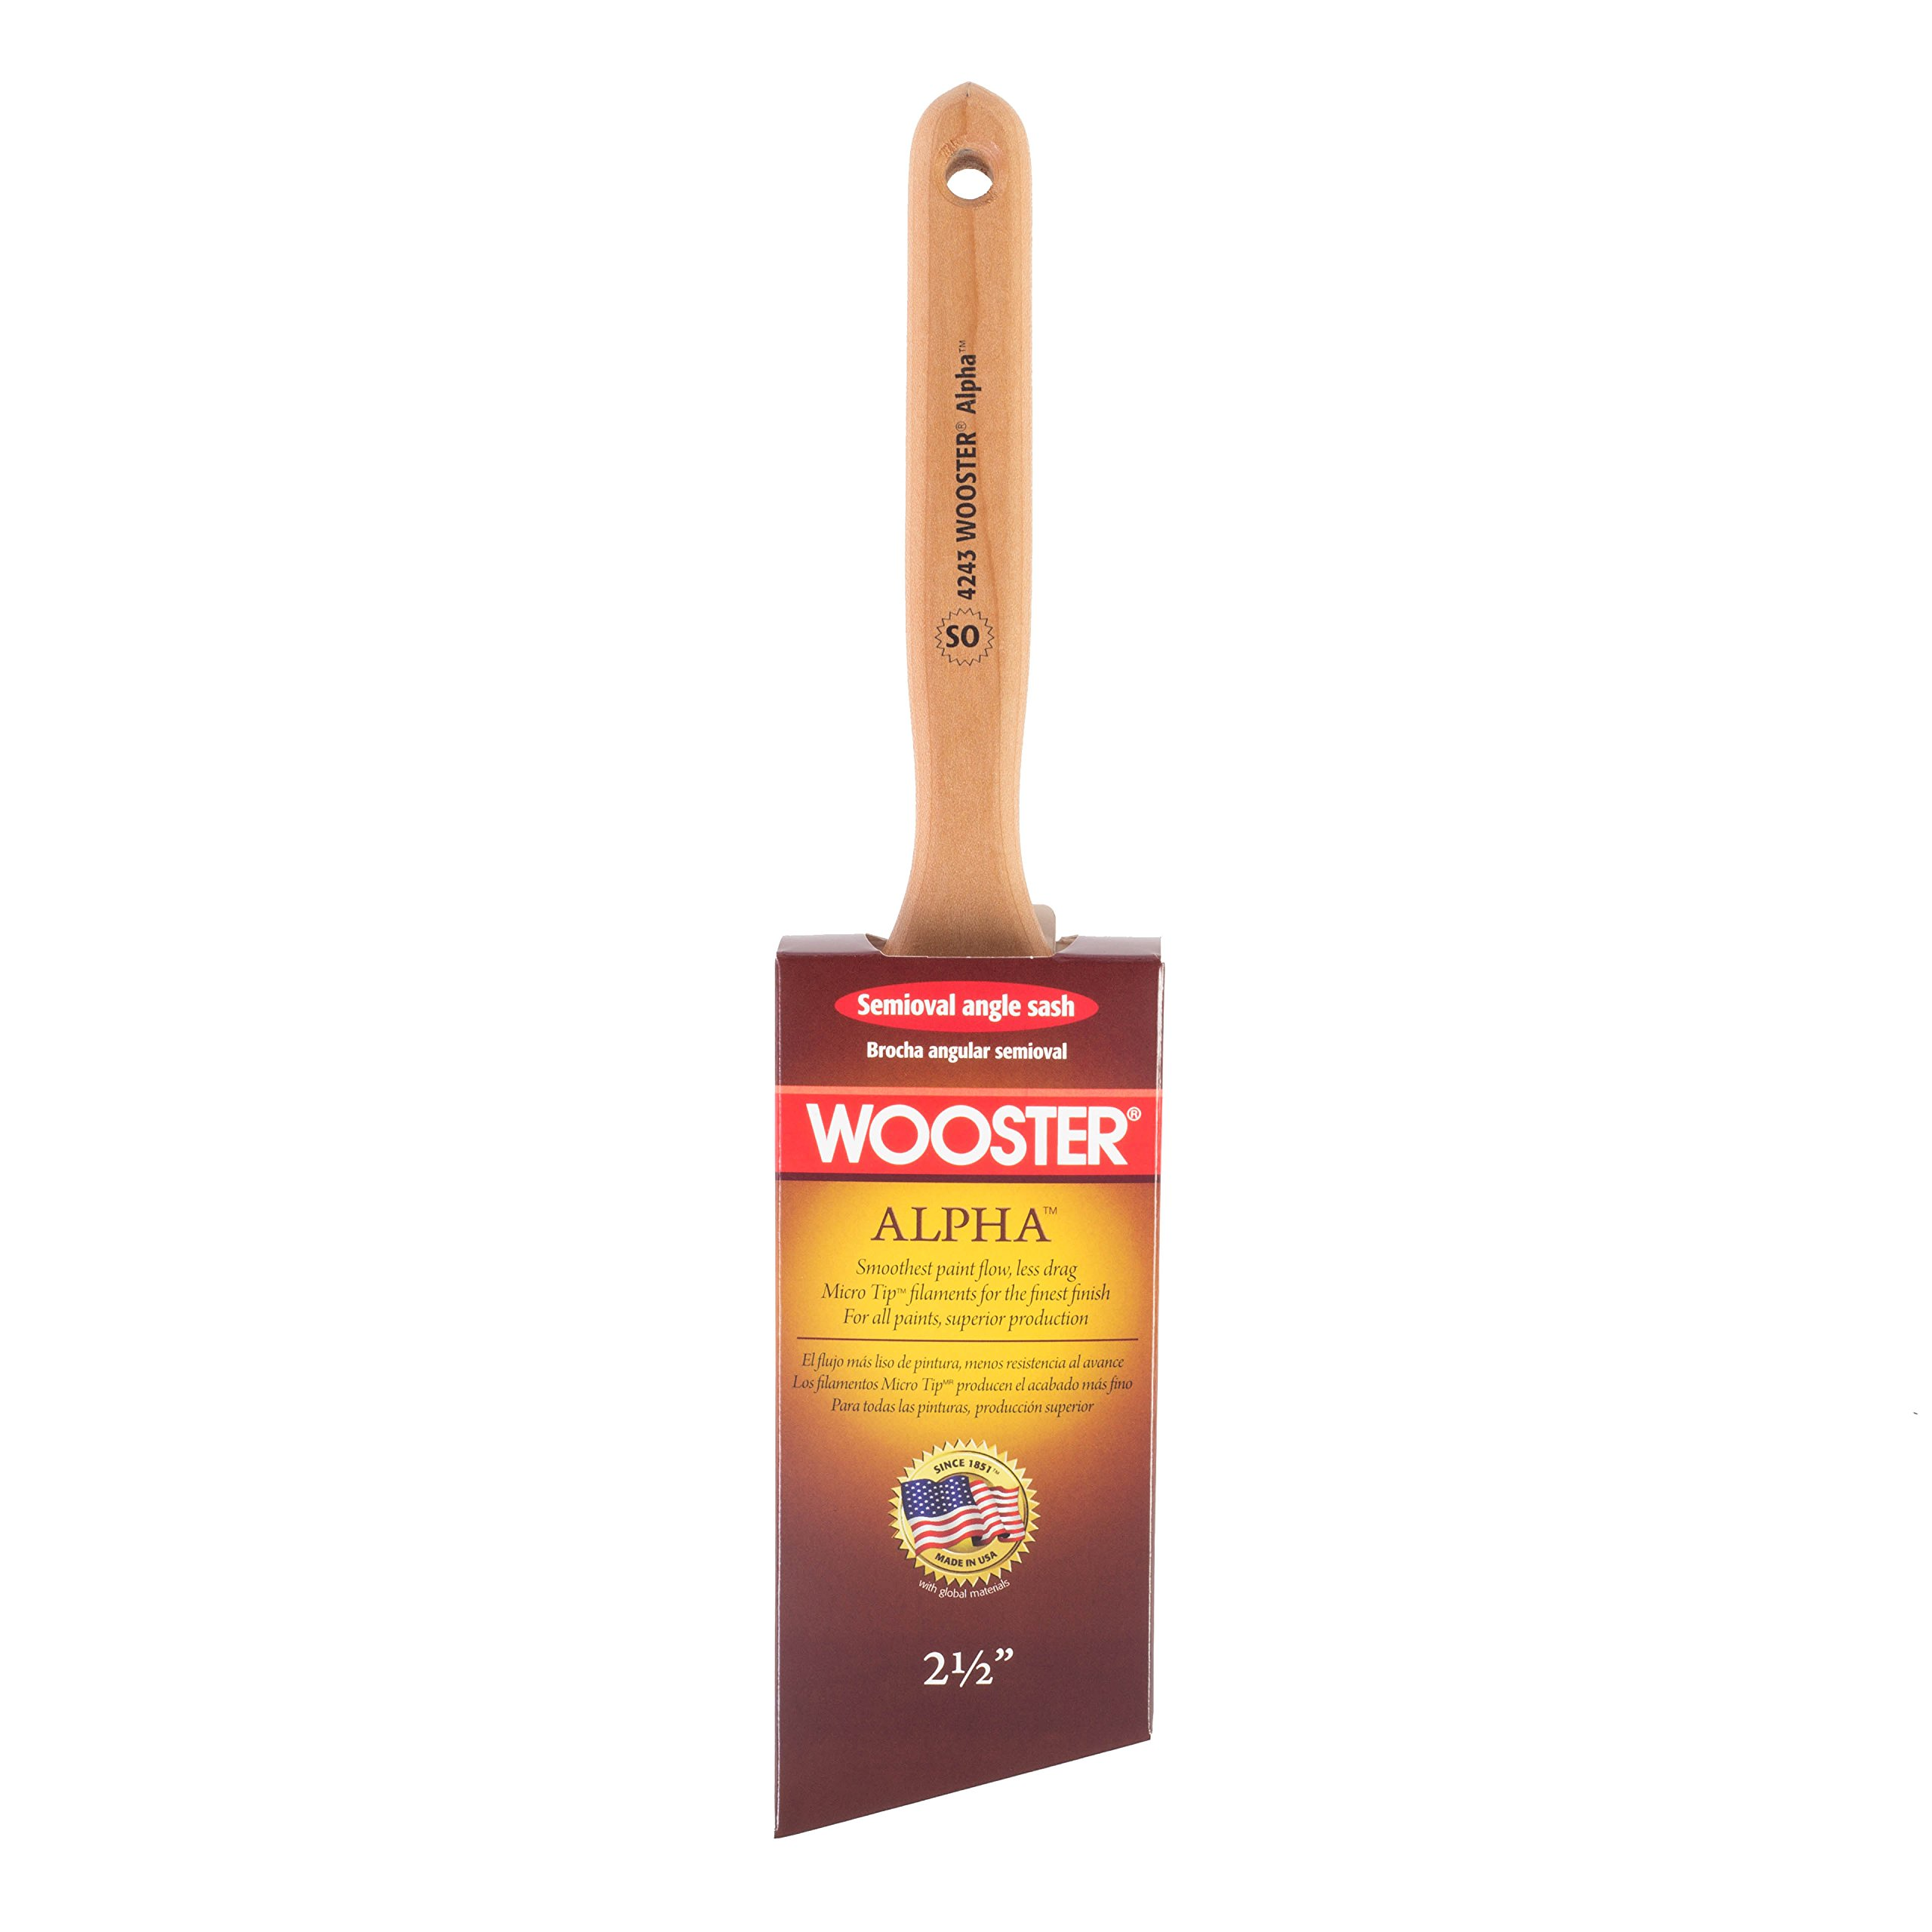 Wooster Brush 4243-2 1/2 Alpha Semi-Oval Angle Sash Paintbrush, 2-1/2-Inch